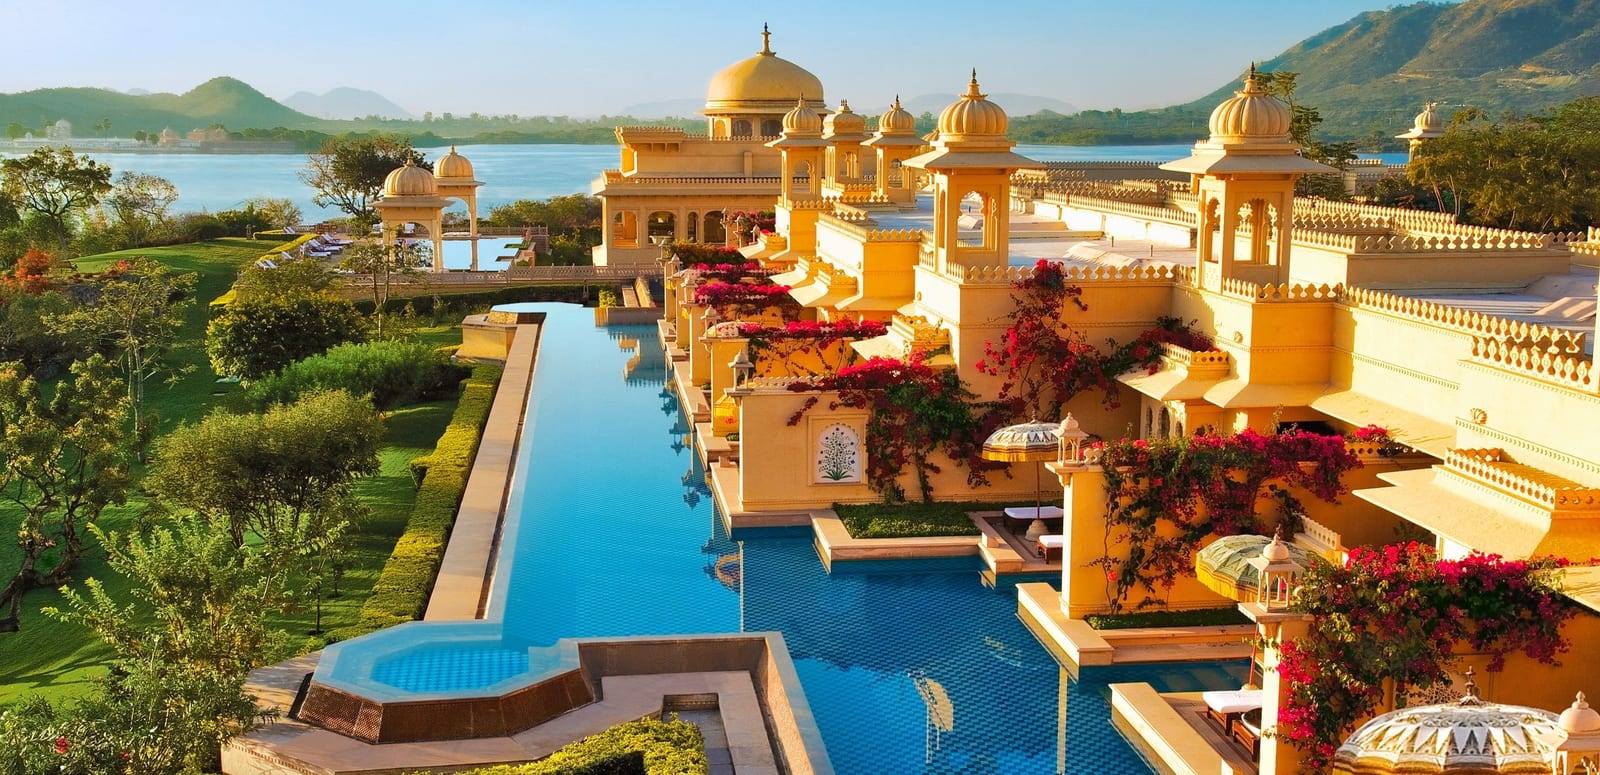 Best Destinations in Udaipur For a Memorable Sightseeing Experience